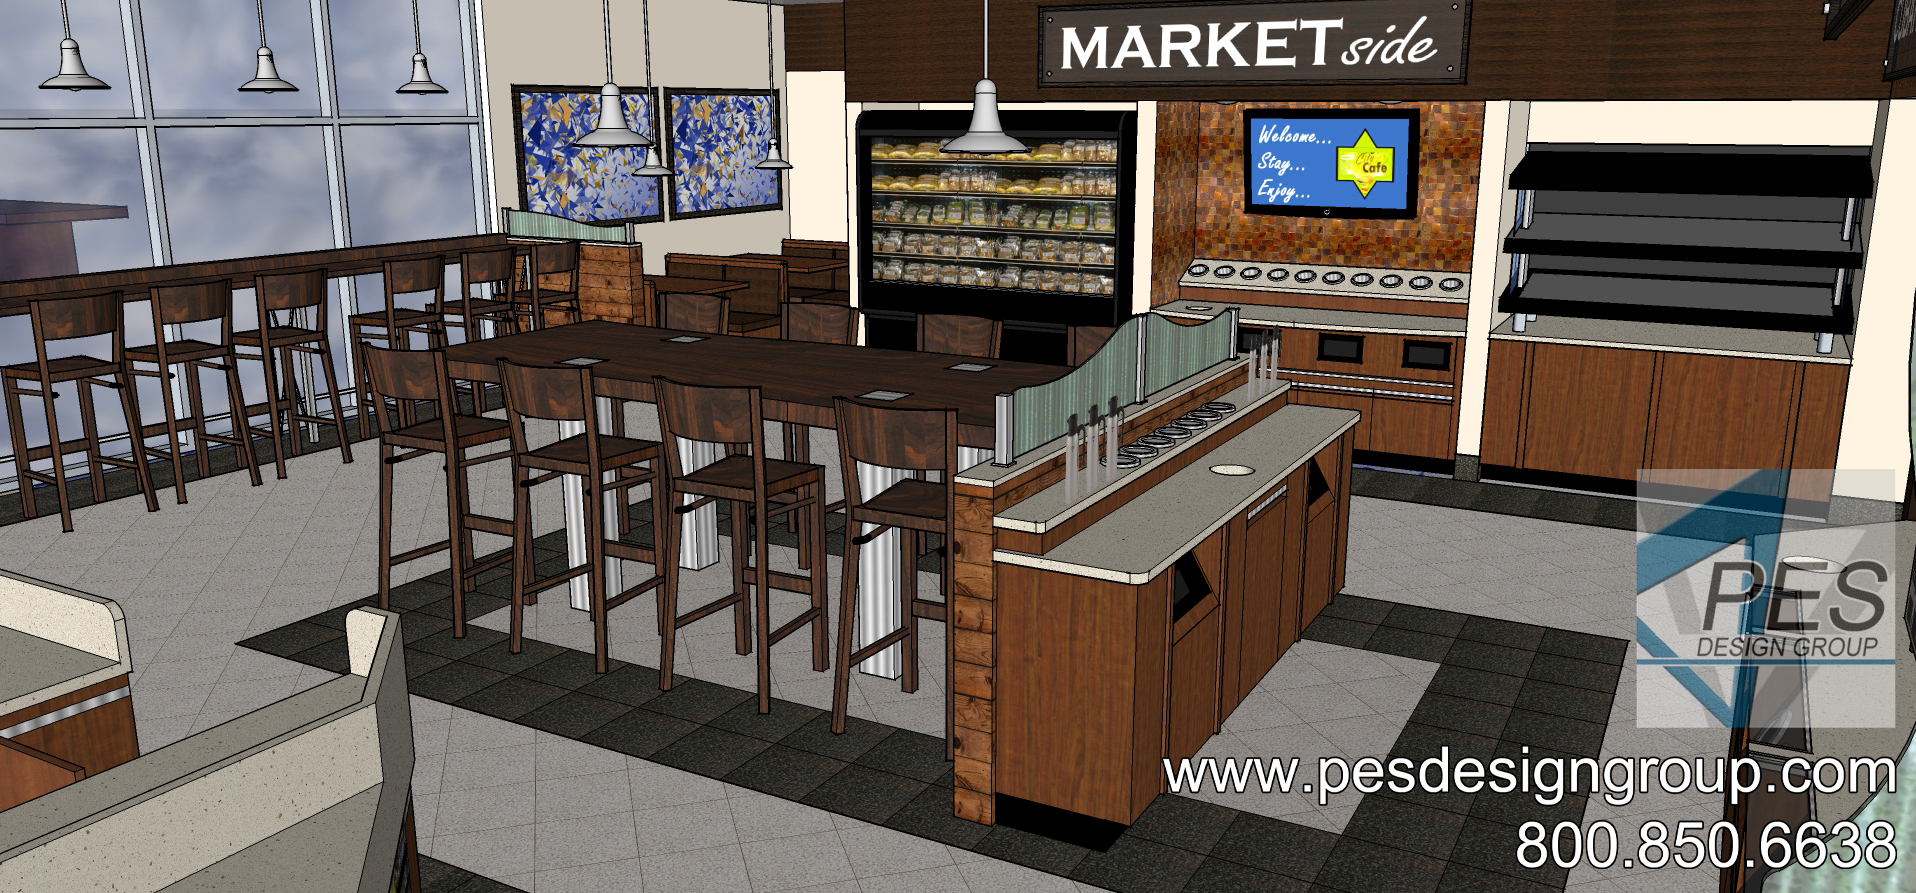 A concept rendering of the foodservice area at a Shell gas station and c-store in Coconut Creek, Florida.